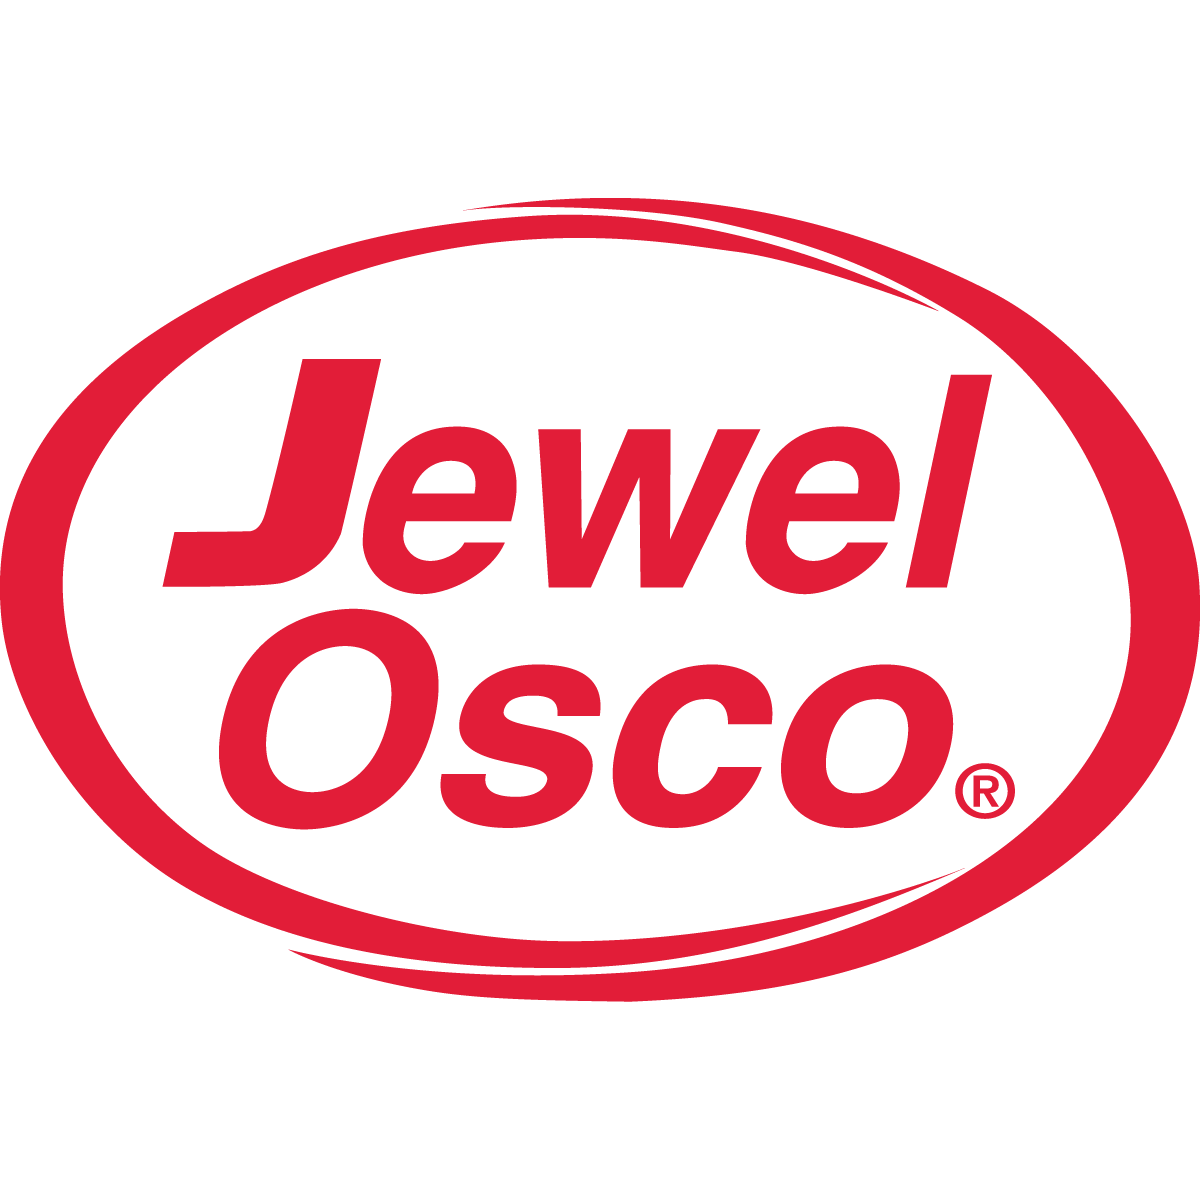 Jewel-Osco Pharmacy - East Moline, IL 61244 - (309)751-0960 | ShowMeLocal.com